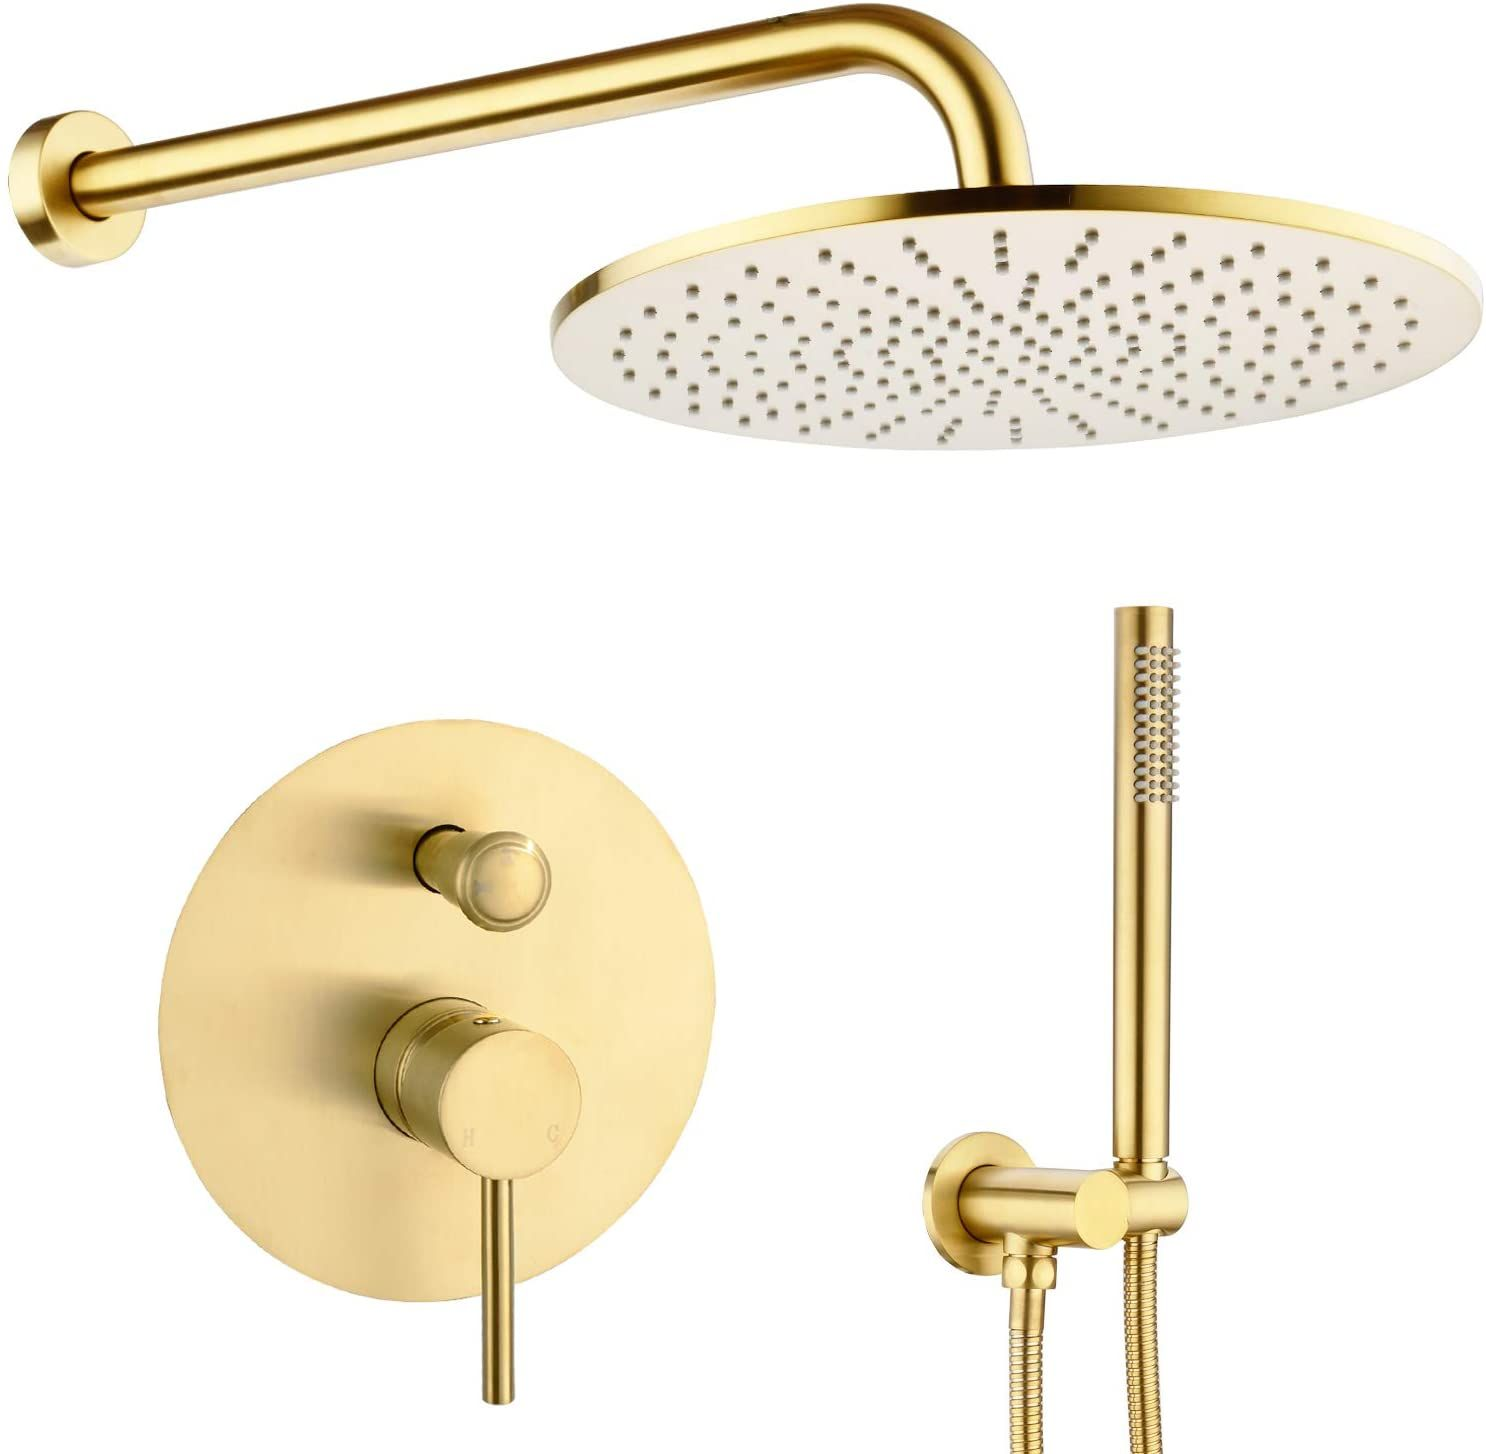 12 Inch Round Bathroom Luxury Rain Mixer Combo Set Wall Mounted 12 Inch Set Brushed Gold In 2021 Rainfall Shower Head Rainfall Shower Shower Faucet Sets [ 1454 x 1486 Pixel ]